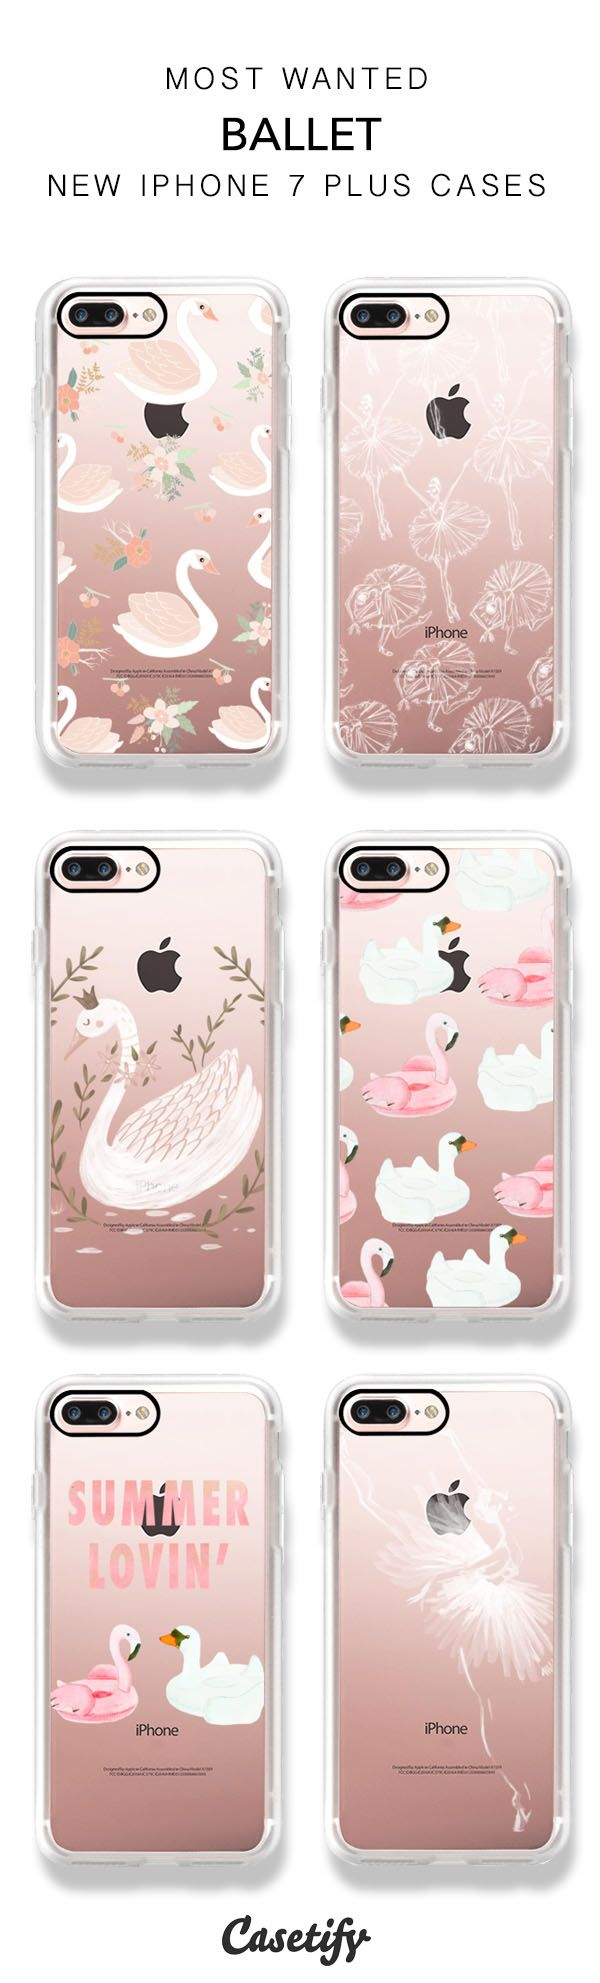 Most Wanted BALLET iPhone 7 Plus cases >> https://www.casetify.com/artworks/oWpERnMc4k